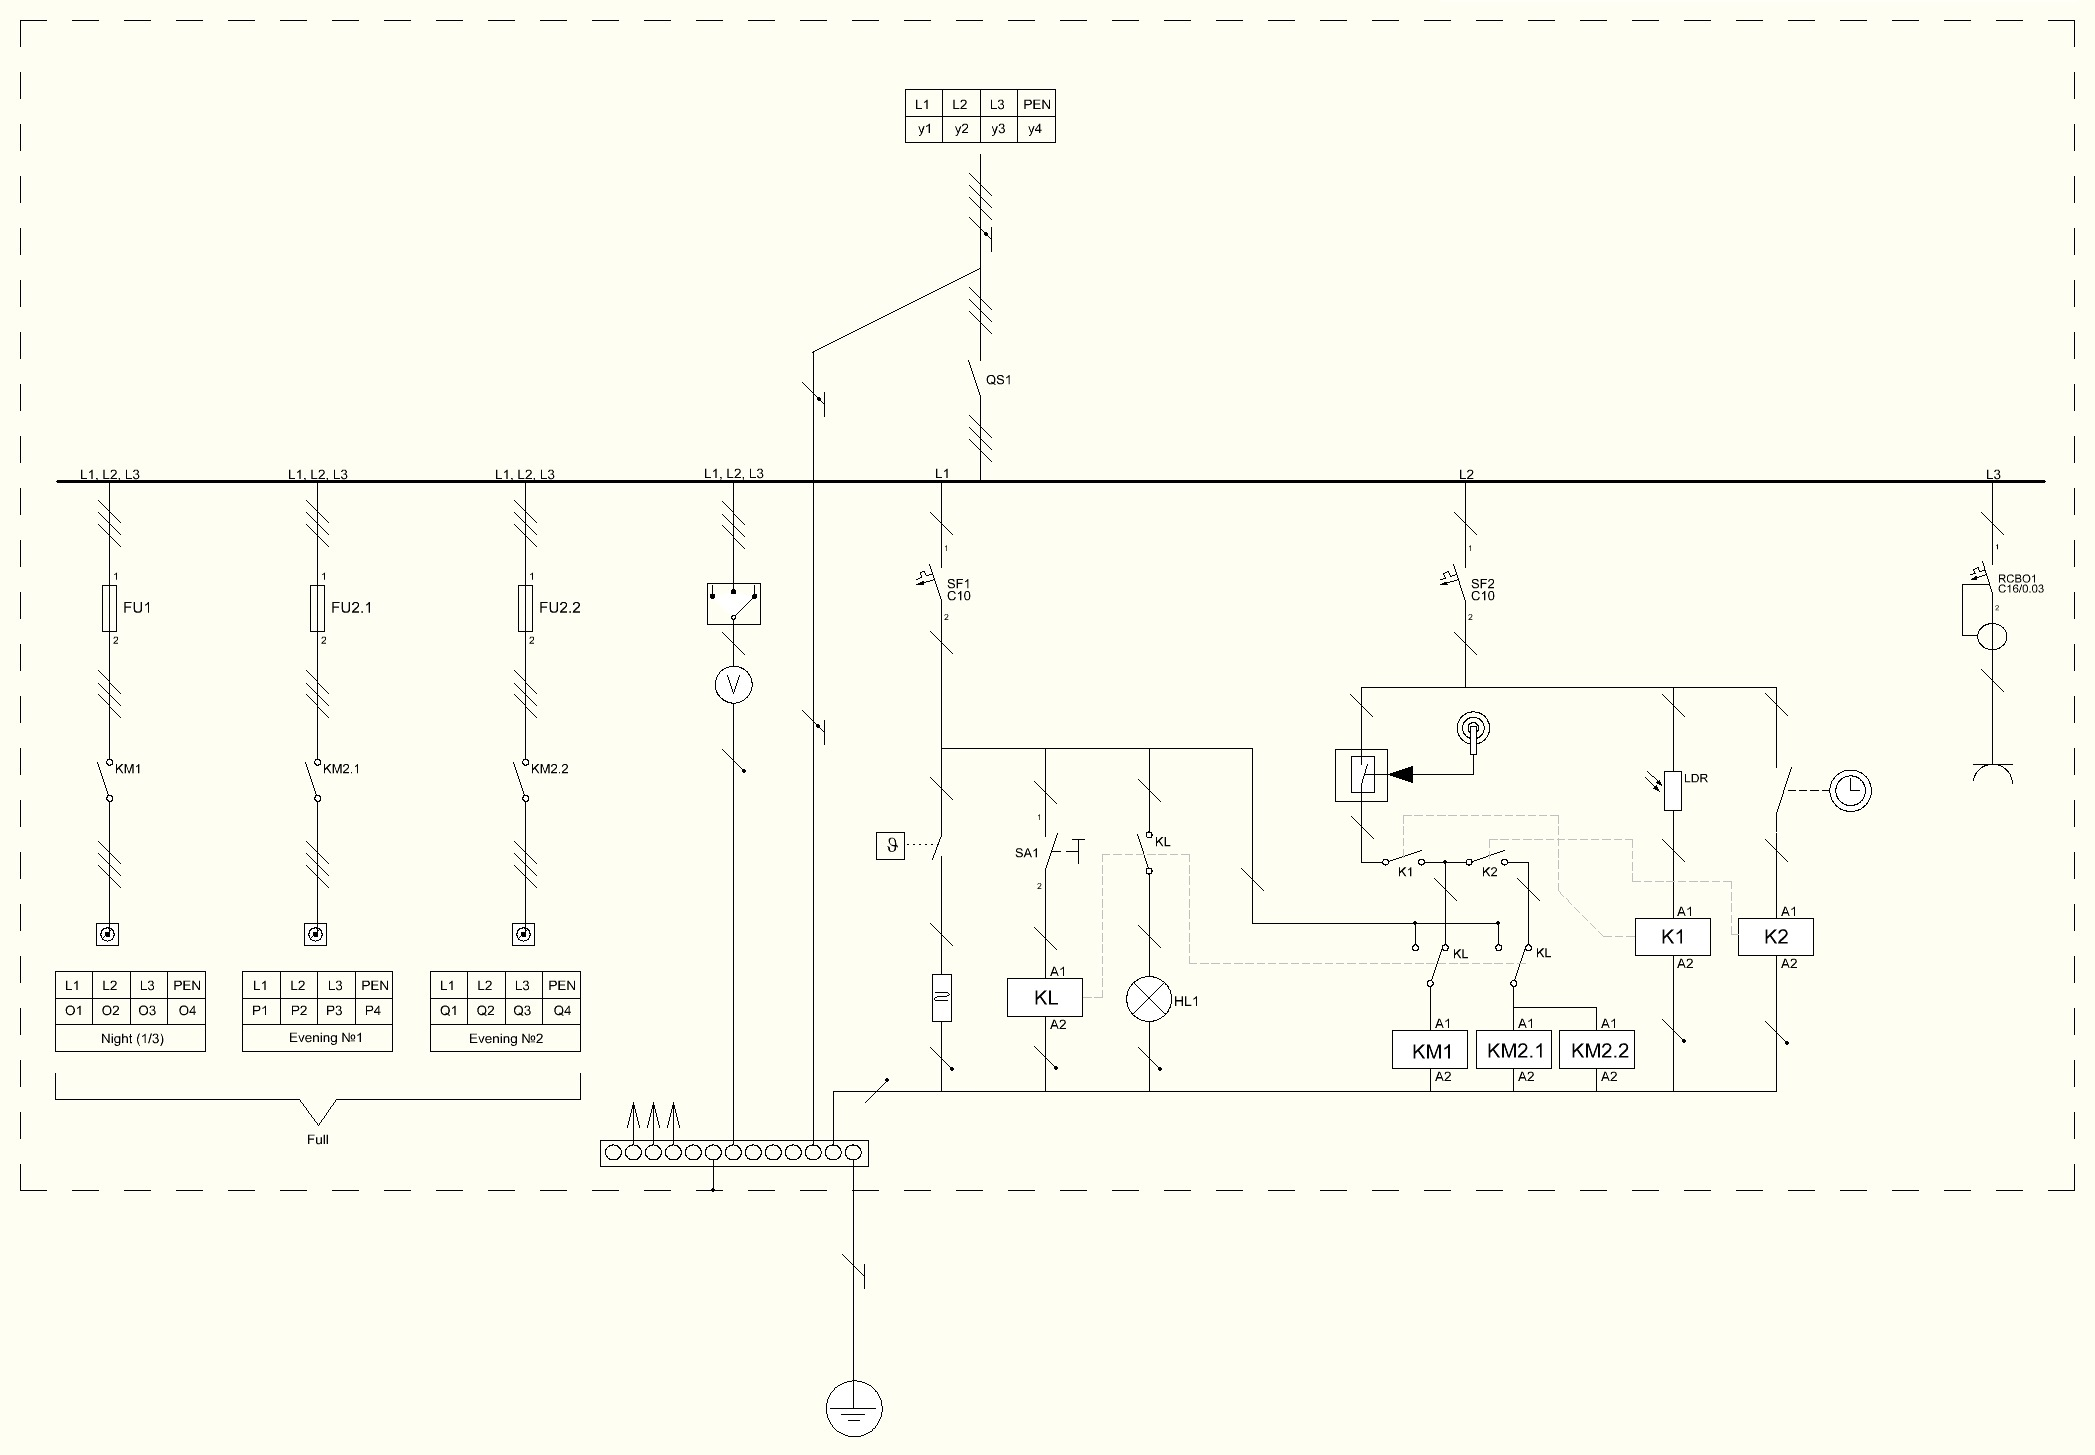 street lighting wiring diagram meetcolab street lighting wiring diagram file wiring diagram of energy saving streetlighting panel